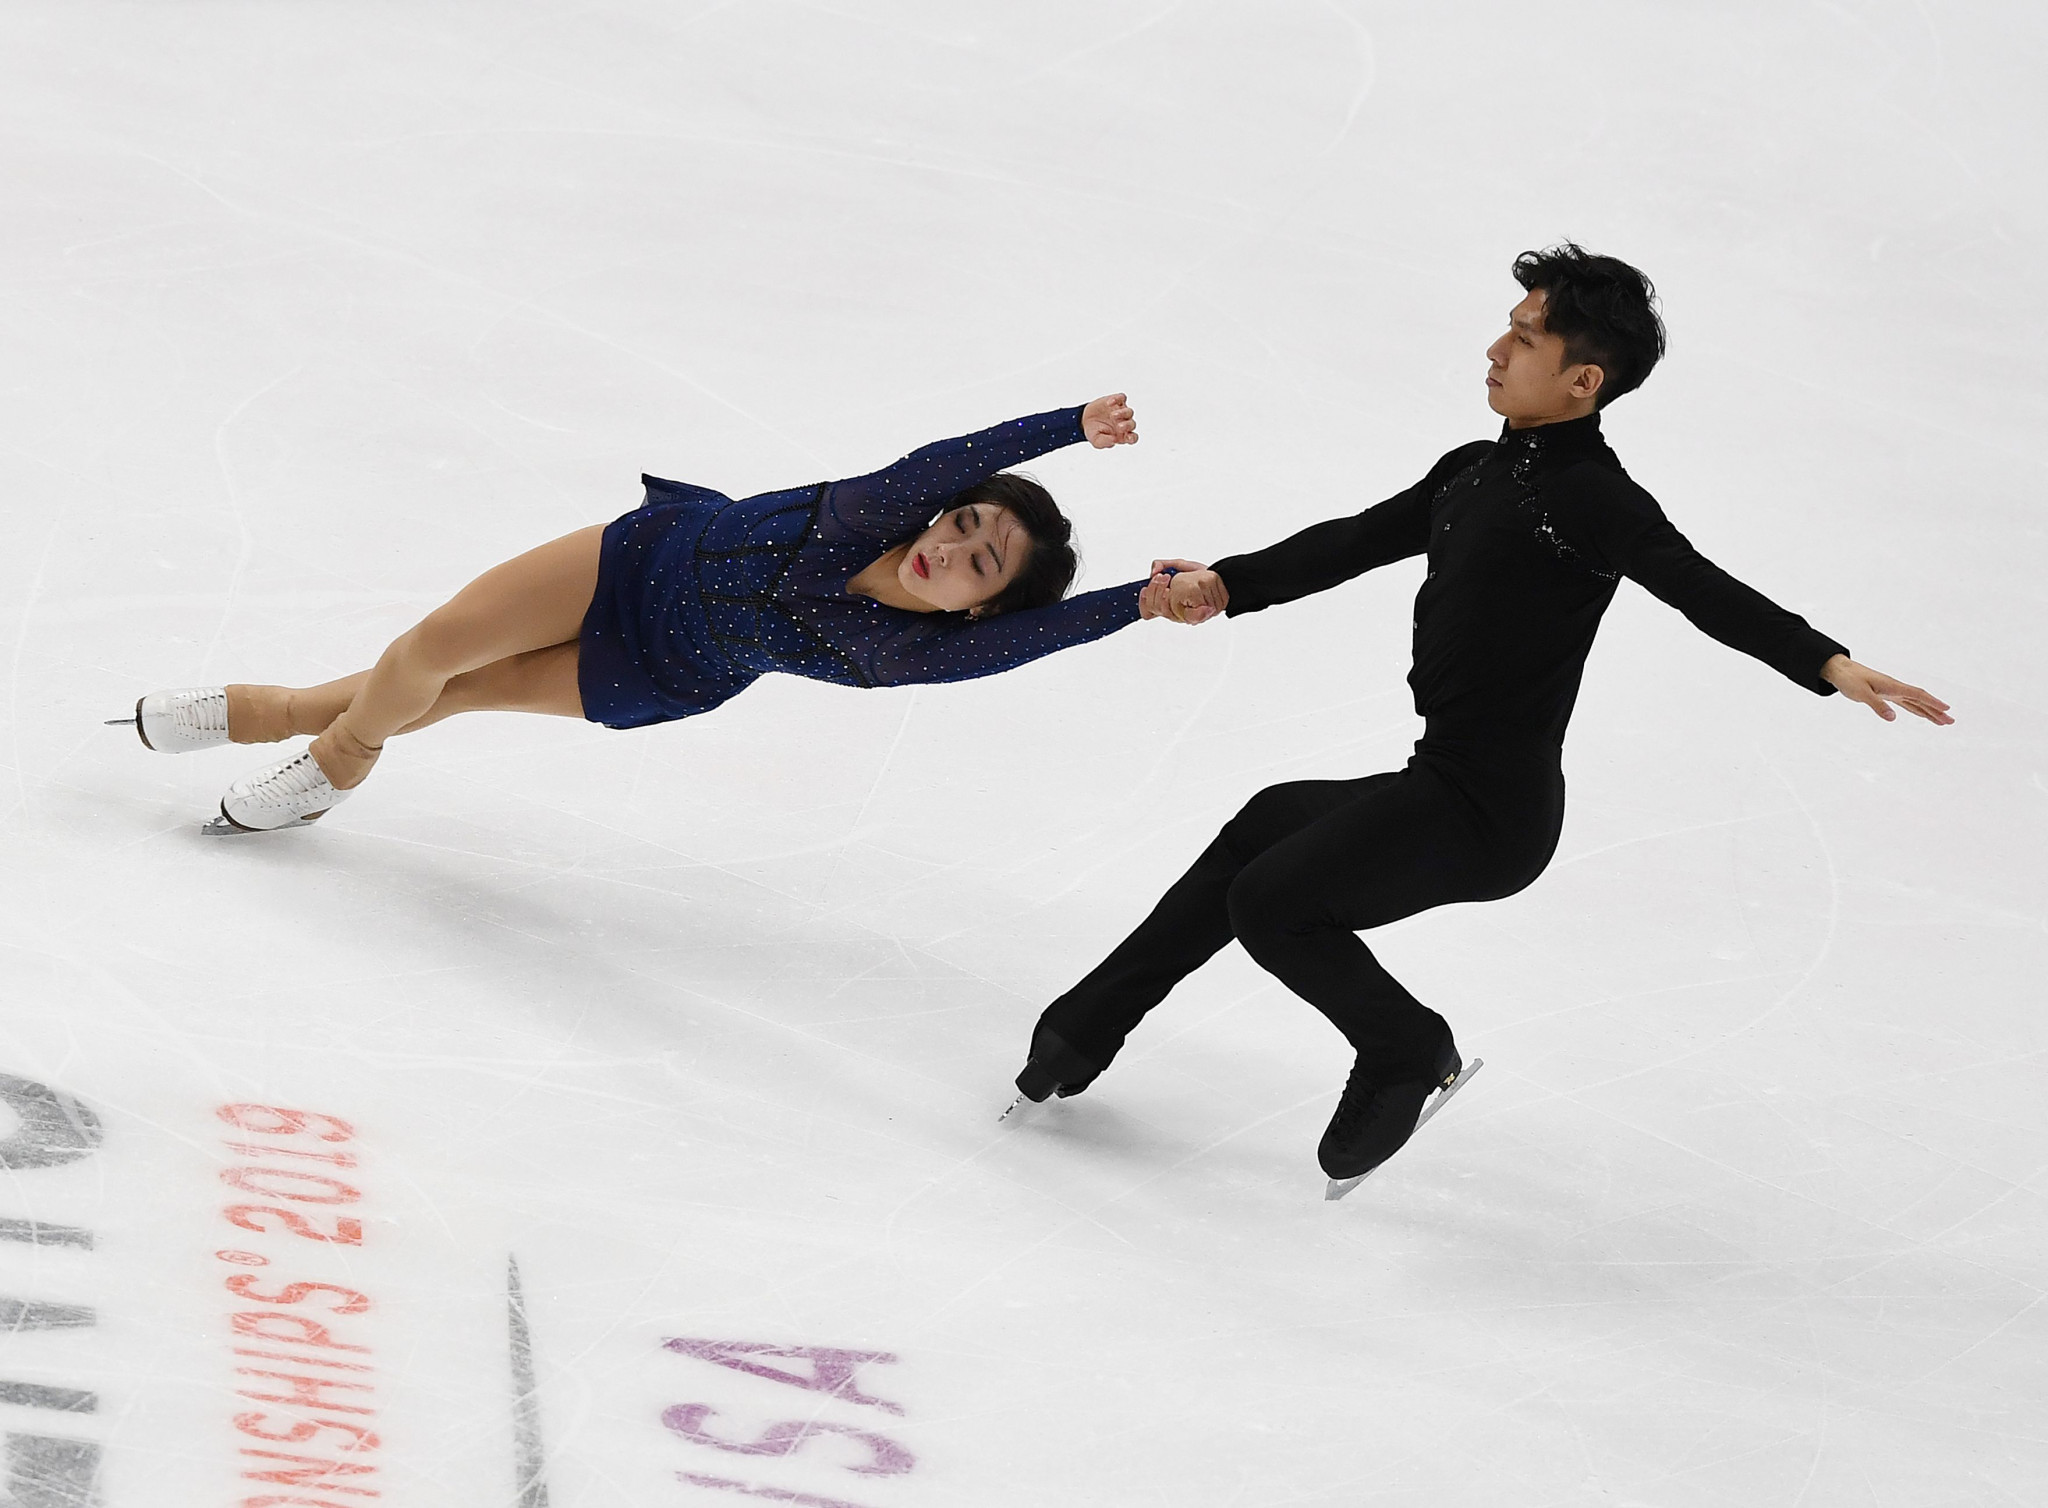 Wenjing Sui and Cong Han won the pairs competition for the fifth time in their career ©Getty Images